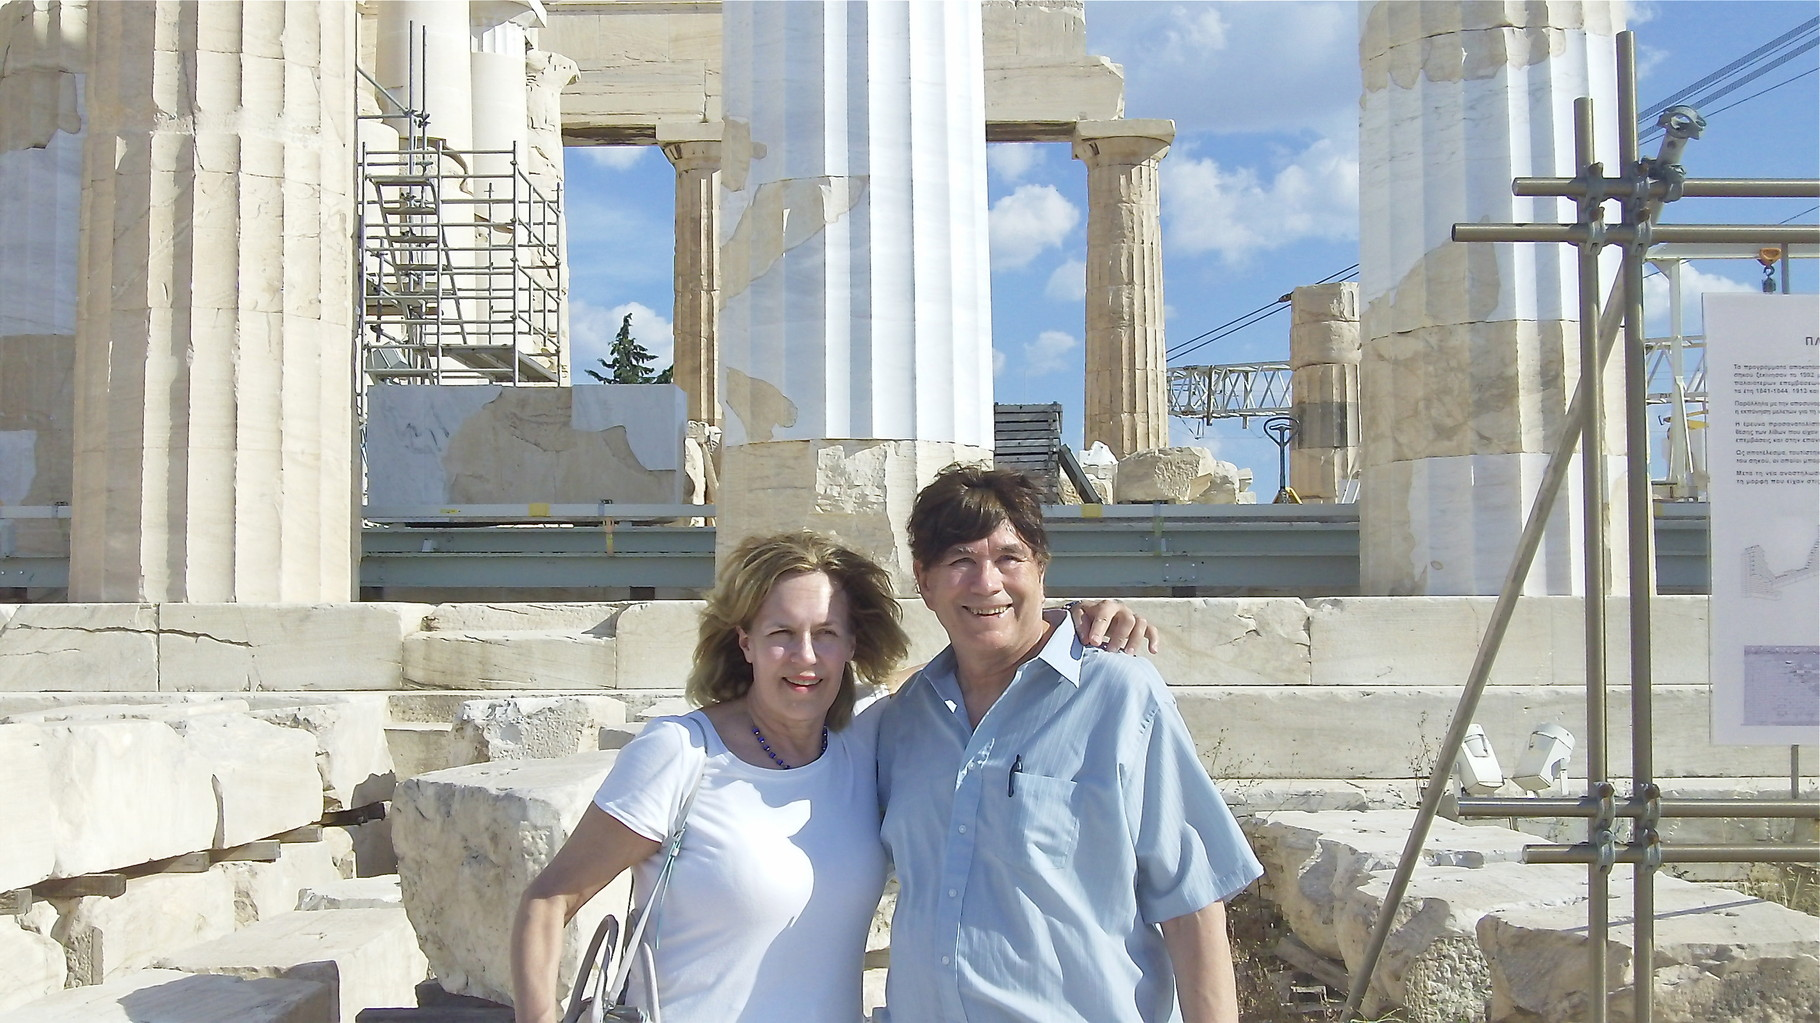 Lorraine & John at the Parthenon